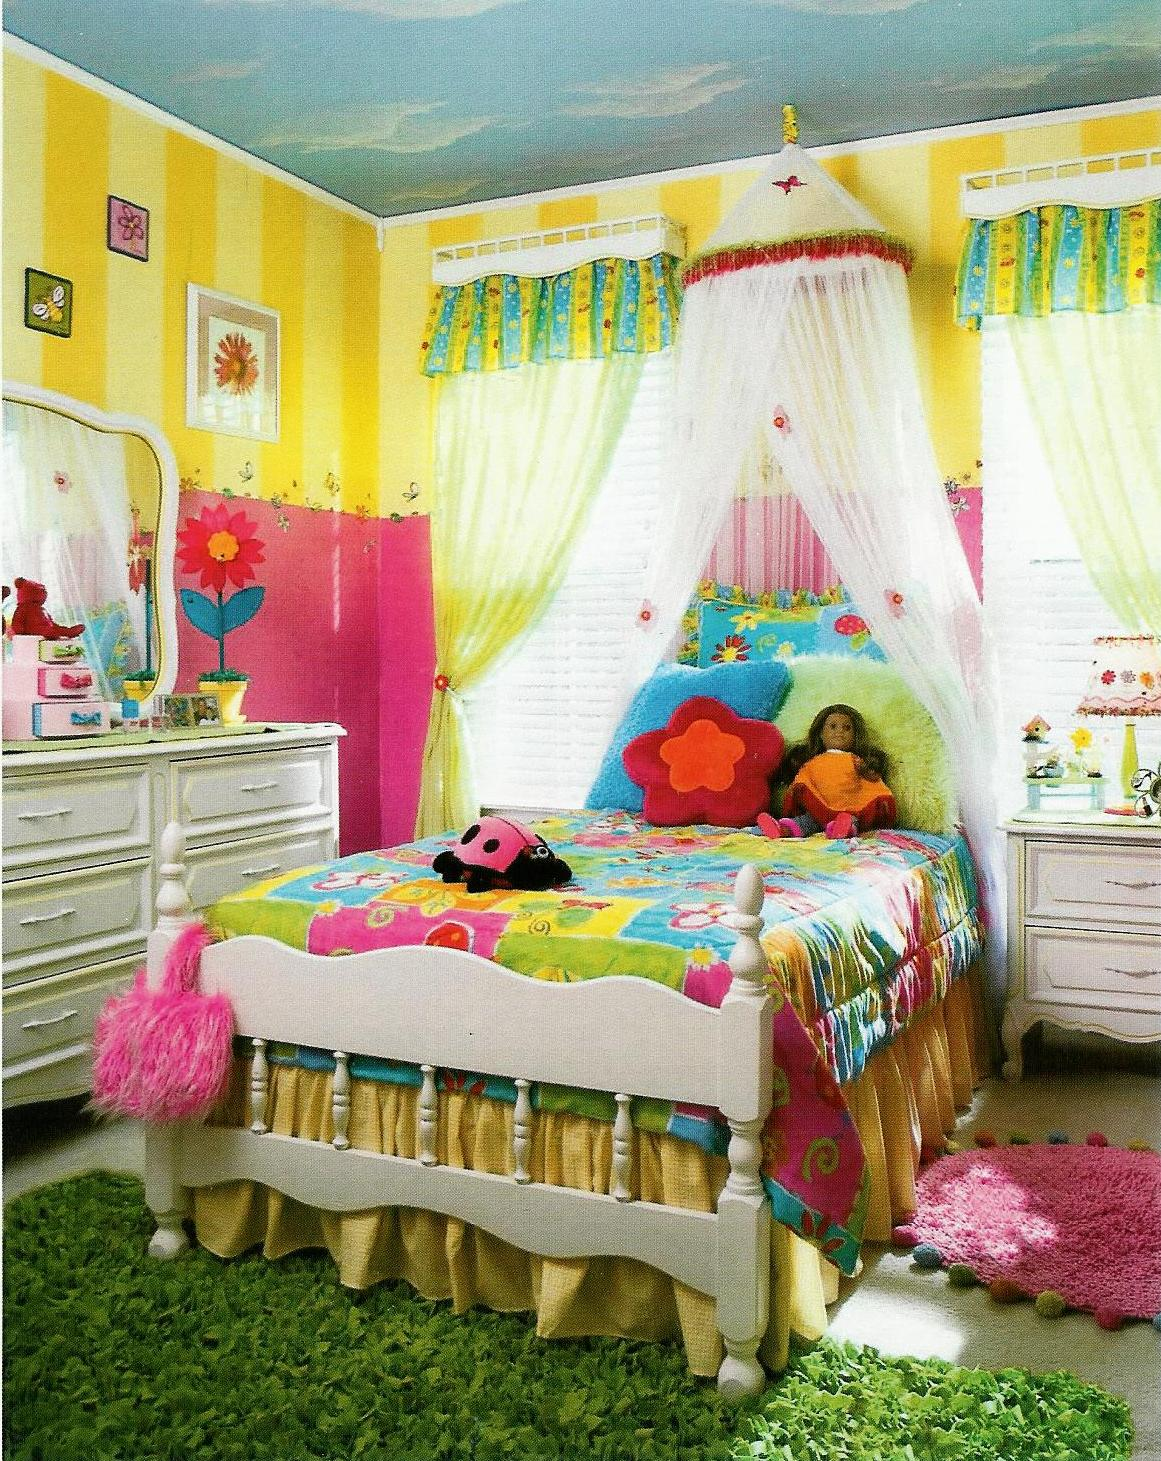 Kid Room Decor Of Kids Rooms Decorations 2017 Grasscloth Wallpaper